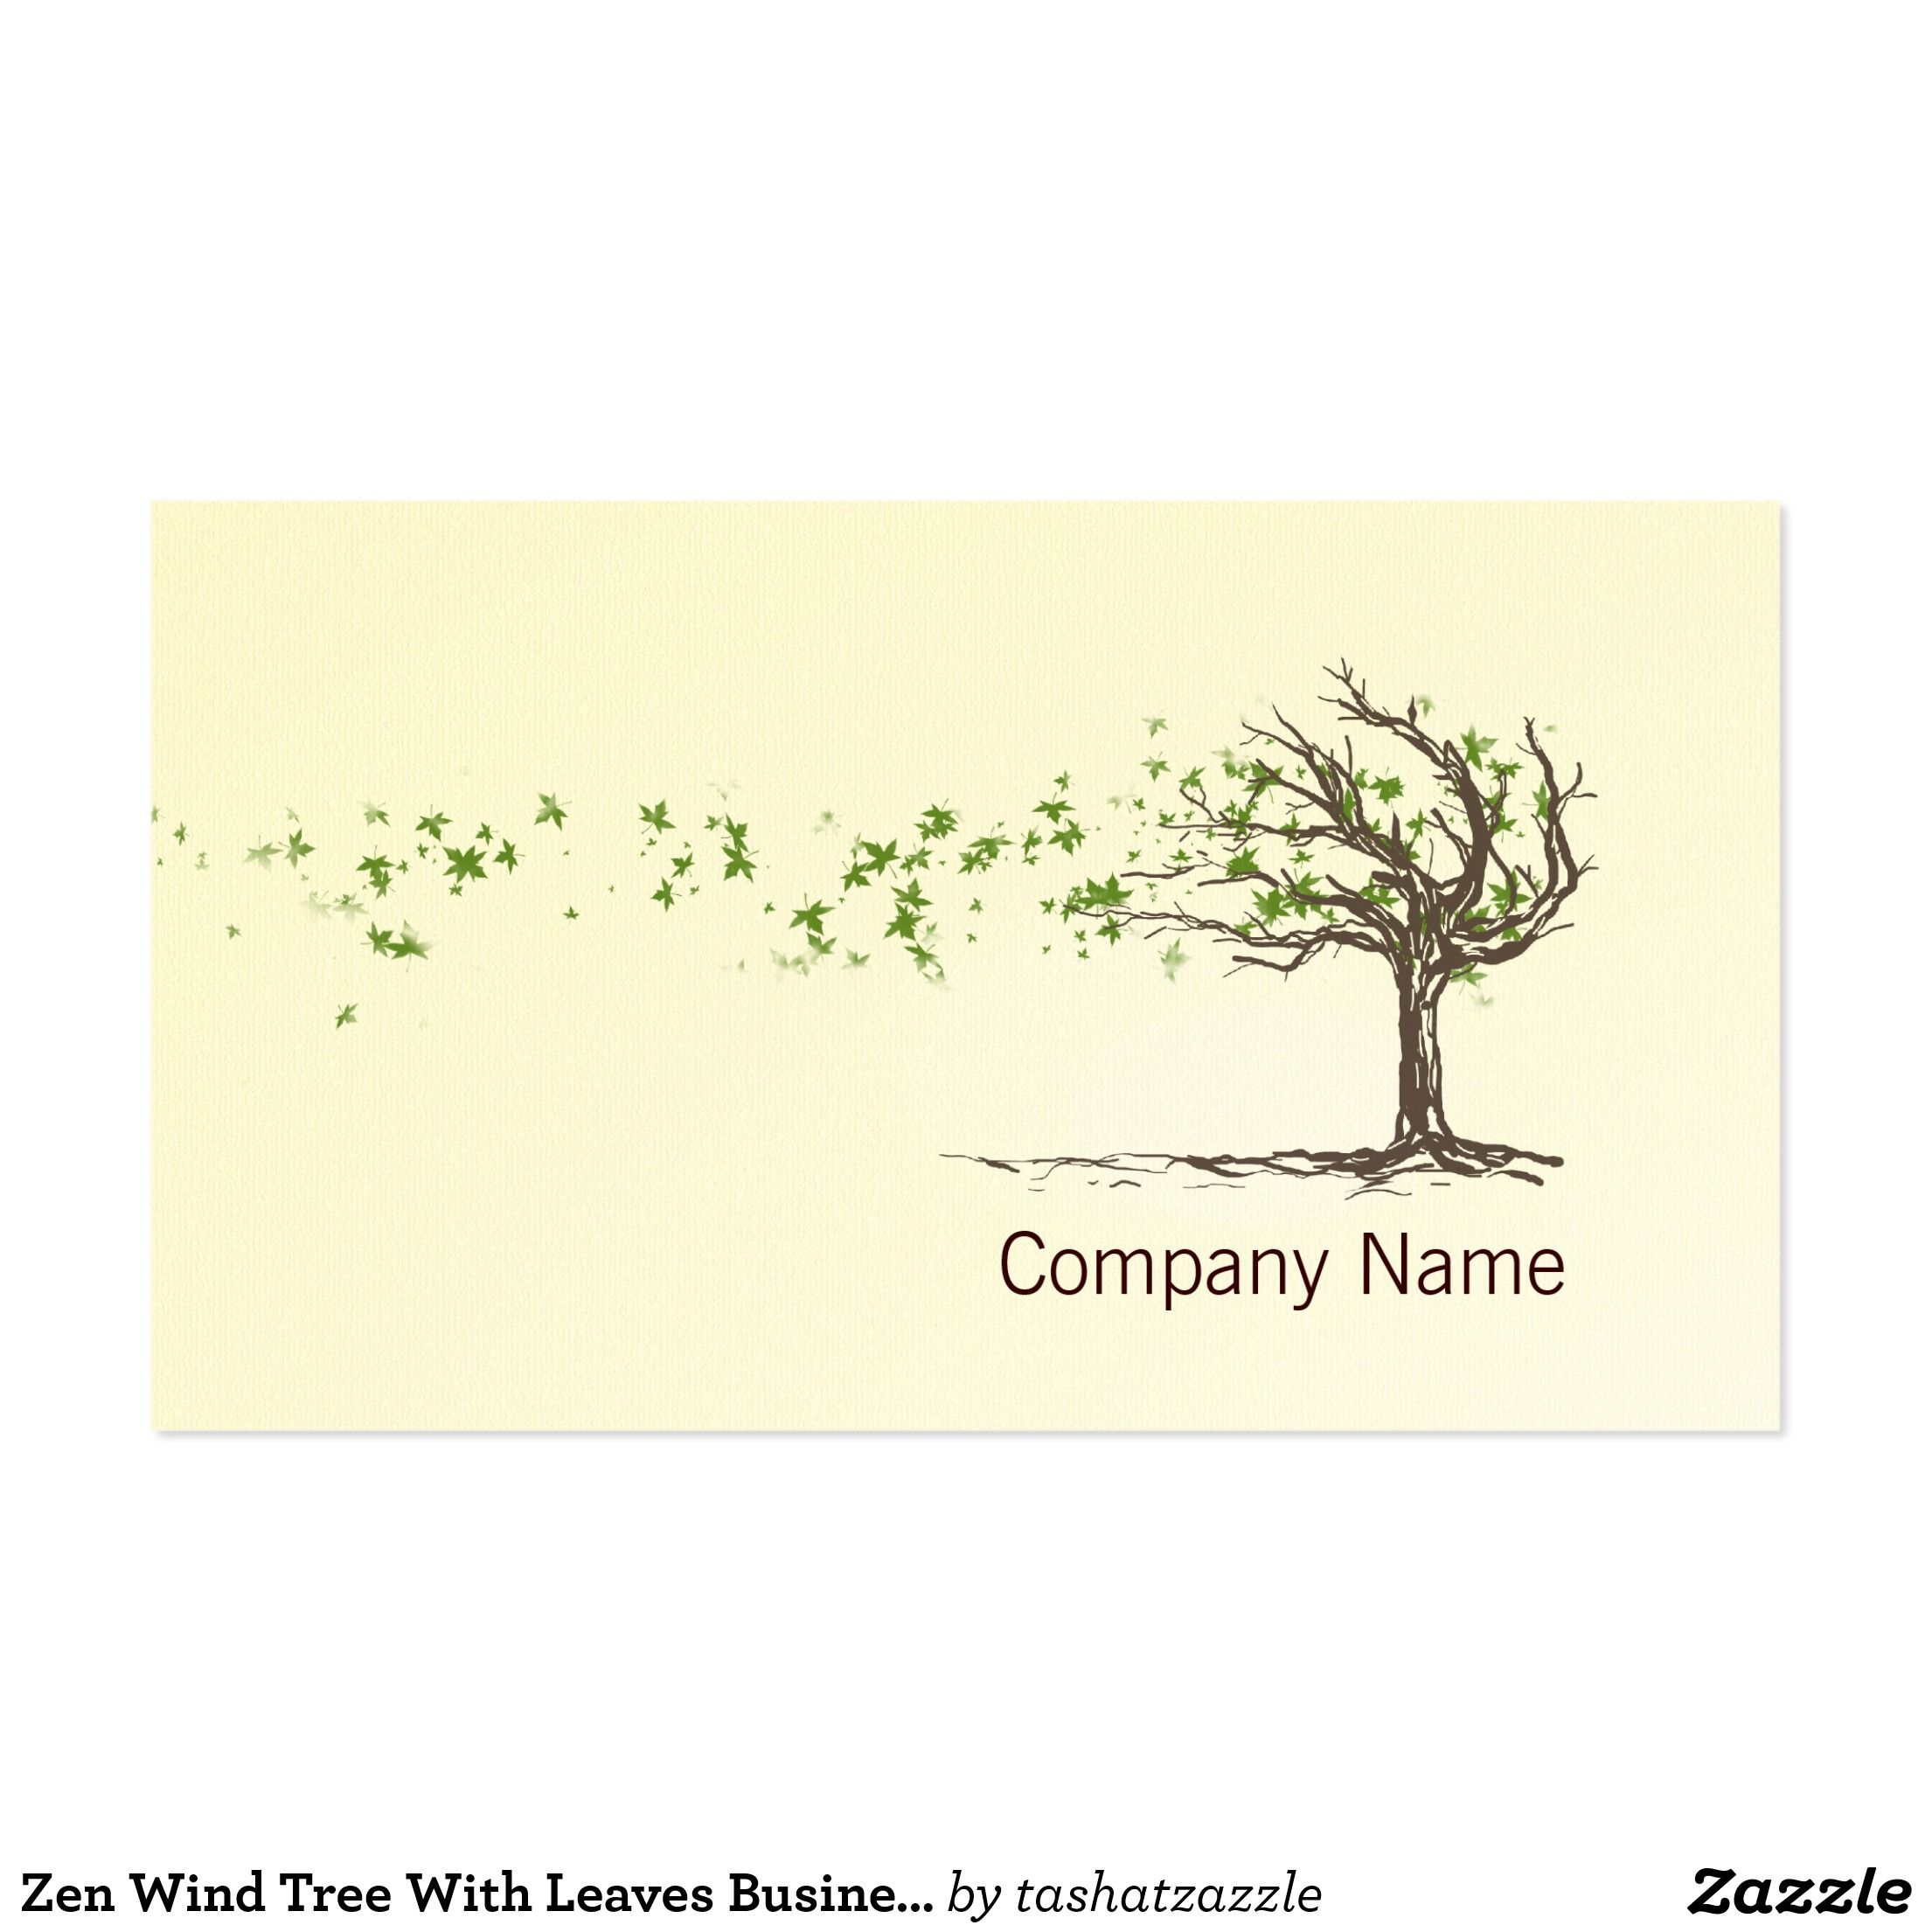 Zen wind tree with leaves business card template business logos zen wind tree with leaves business card template magicingreecefo Choice Image